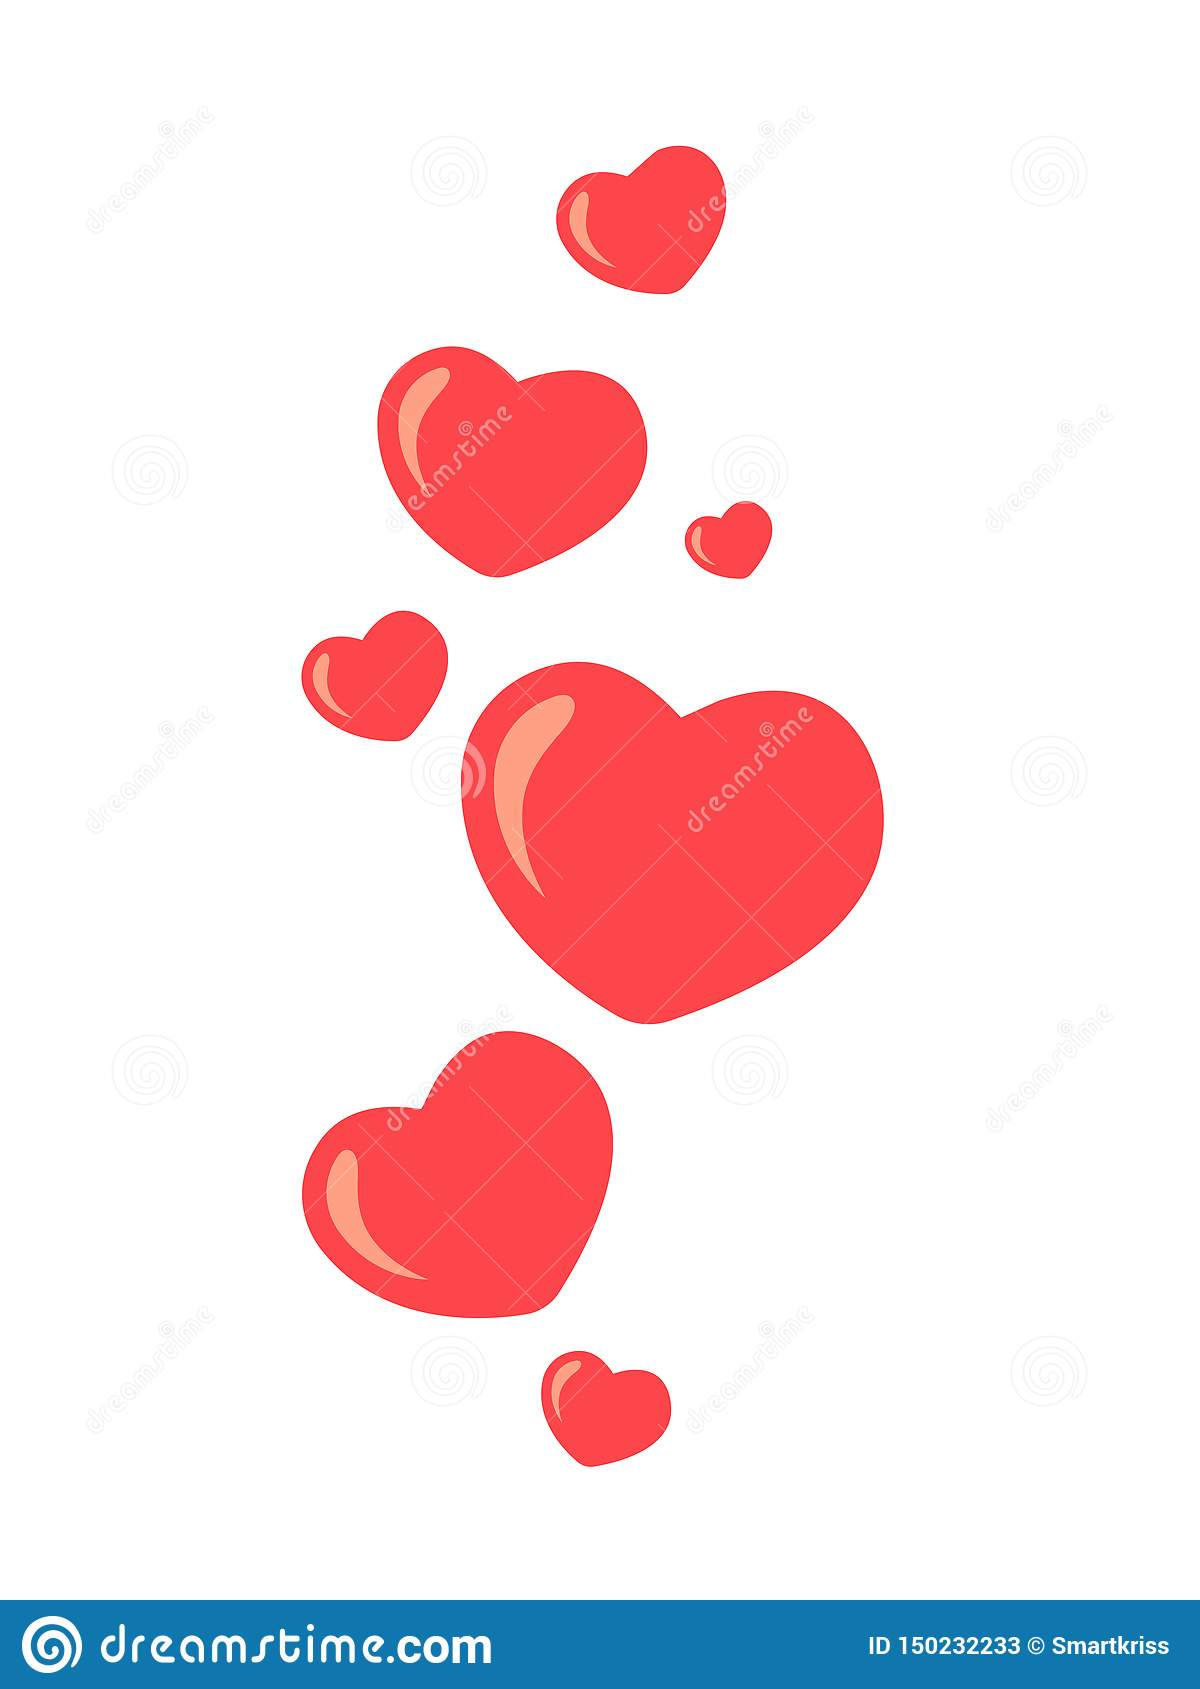 New Heart love, like. Flying up hearts. Red hearts of different sizes fly away. Like and Heart love icon in move